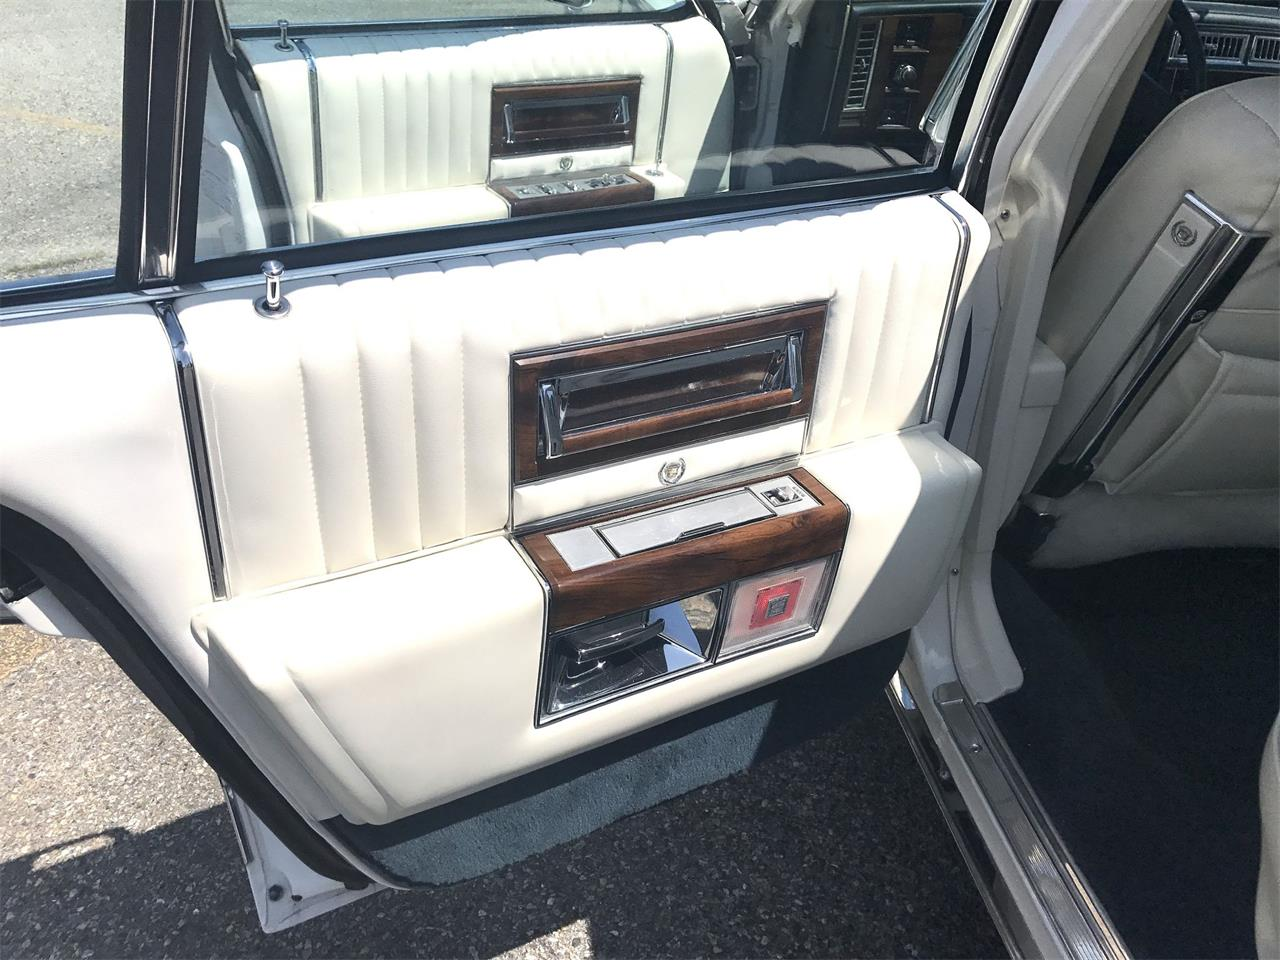 1987 Cadillac Fleetwood Brougham for sale in Stratford, NJ – photo 20